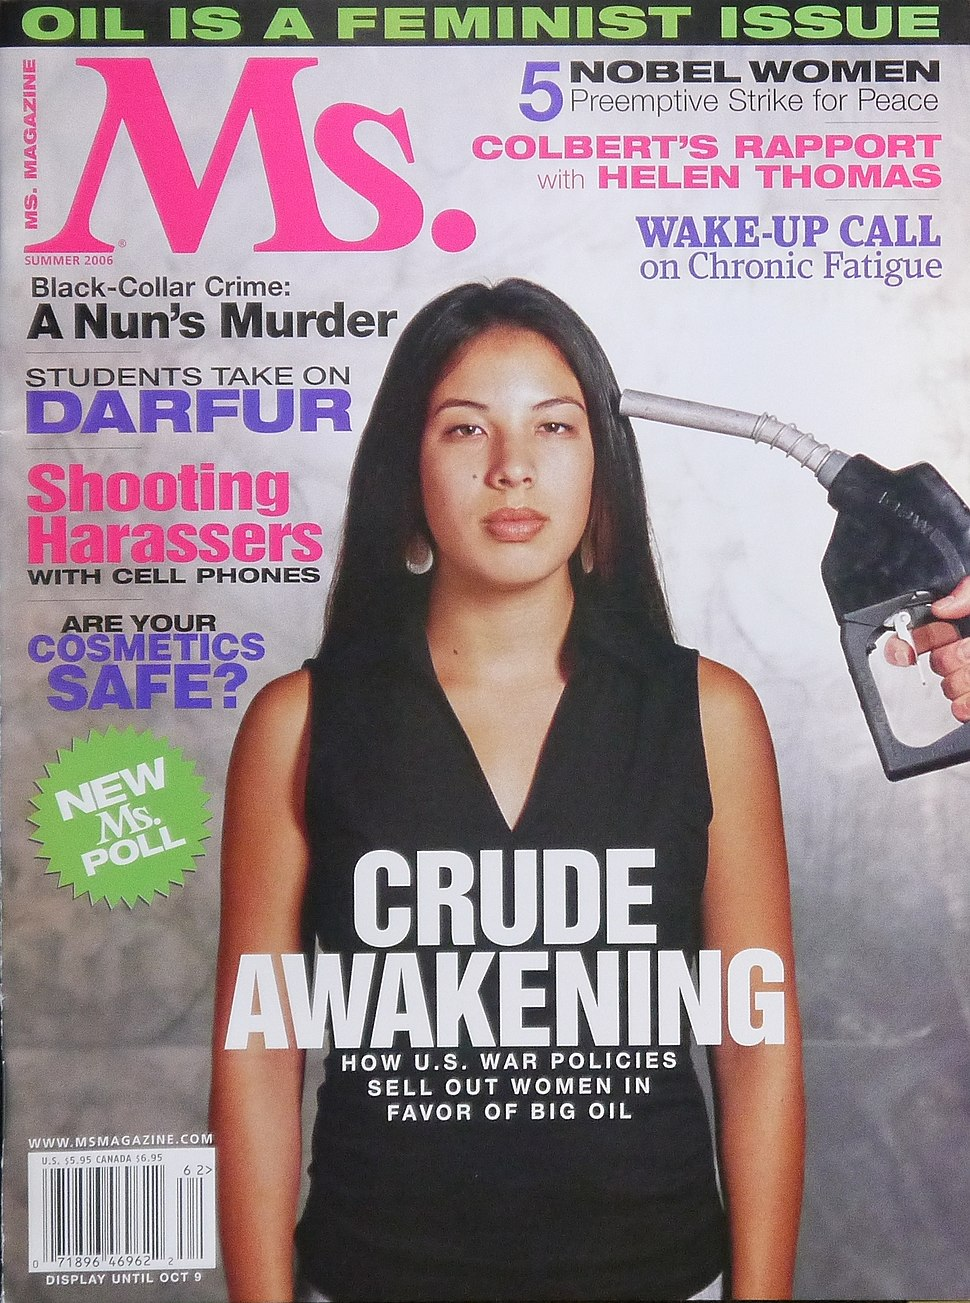 Ms. magazine Cover - Summer 2006